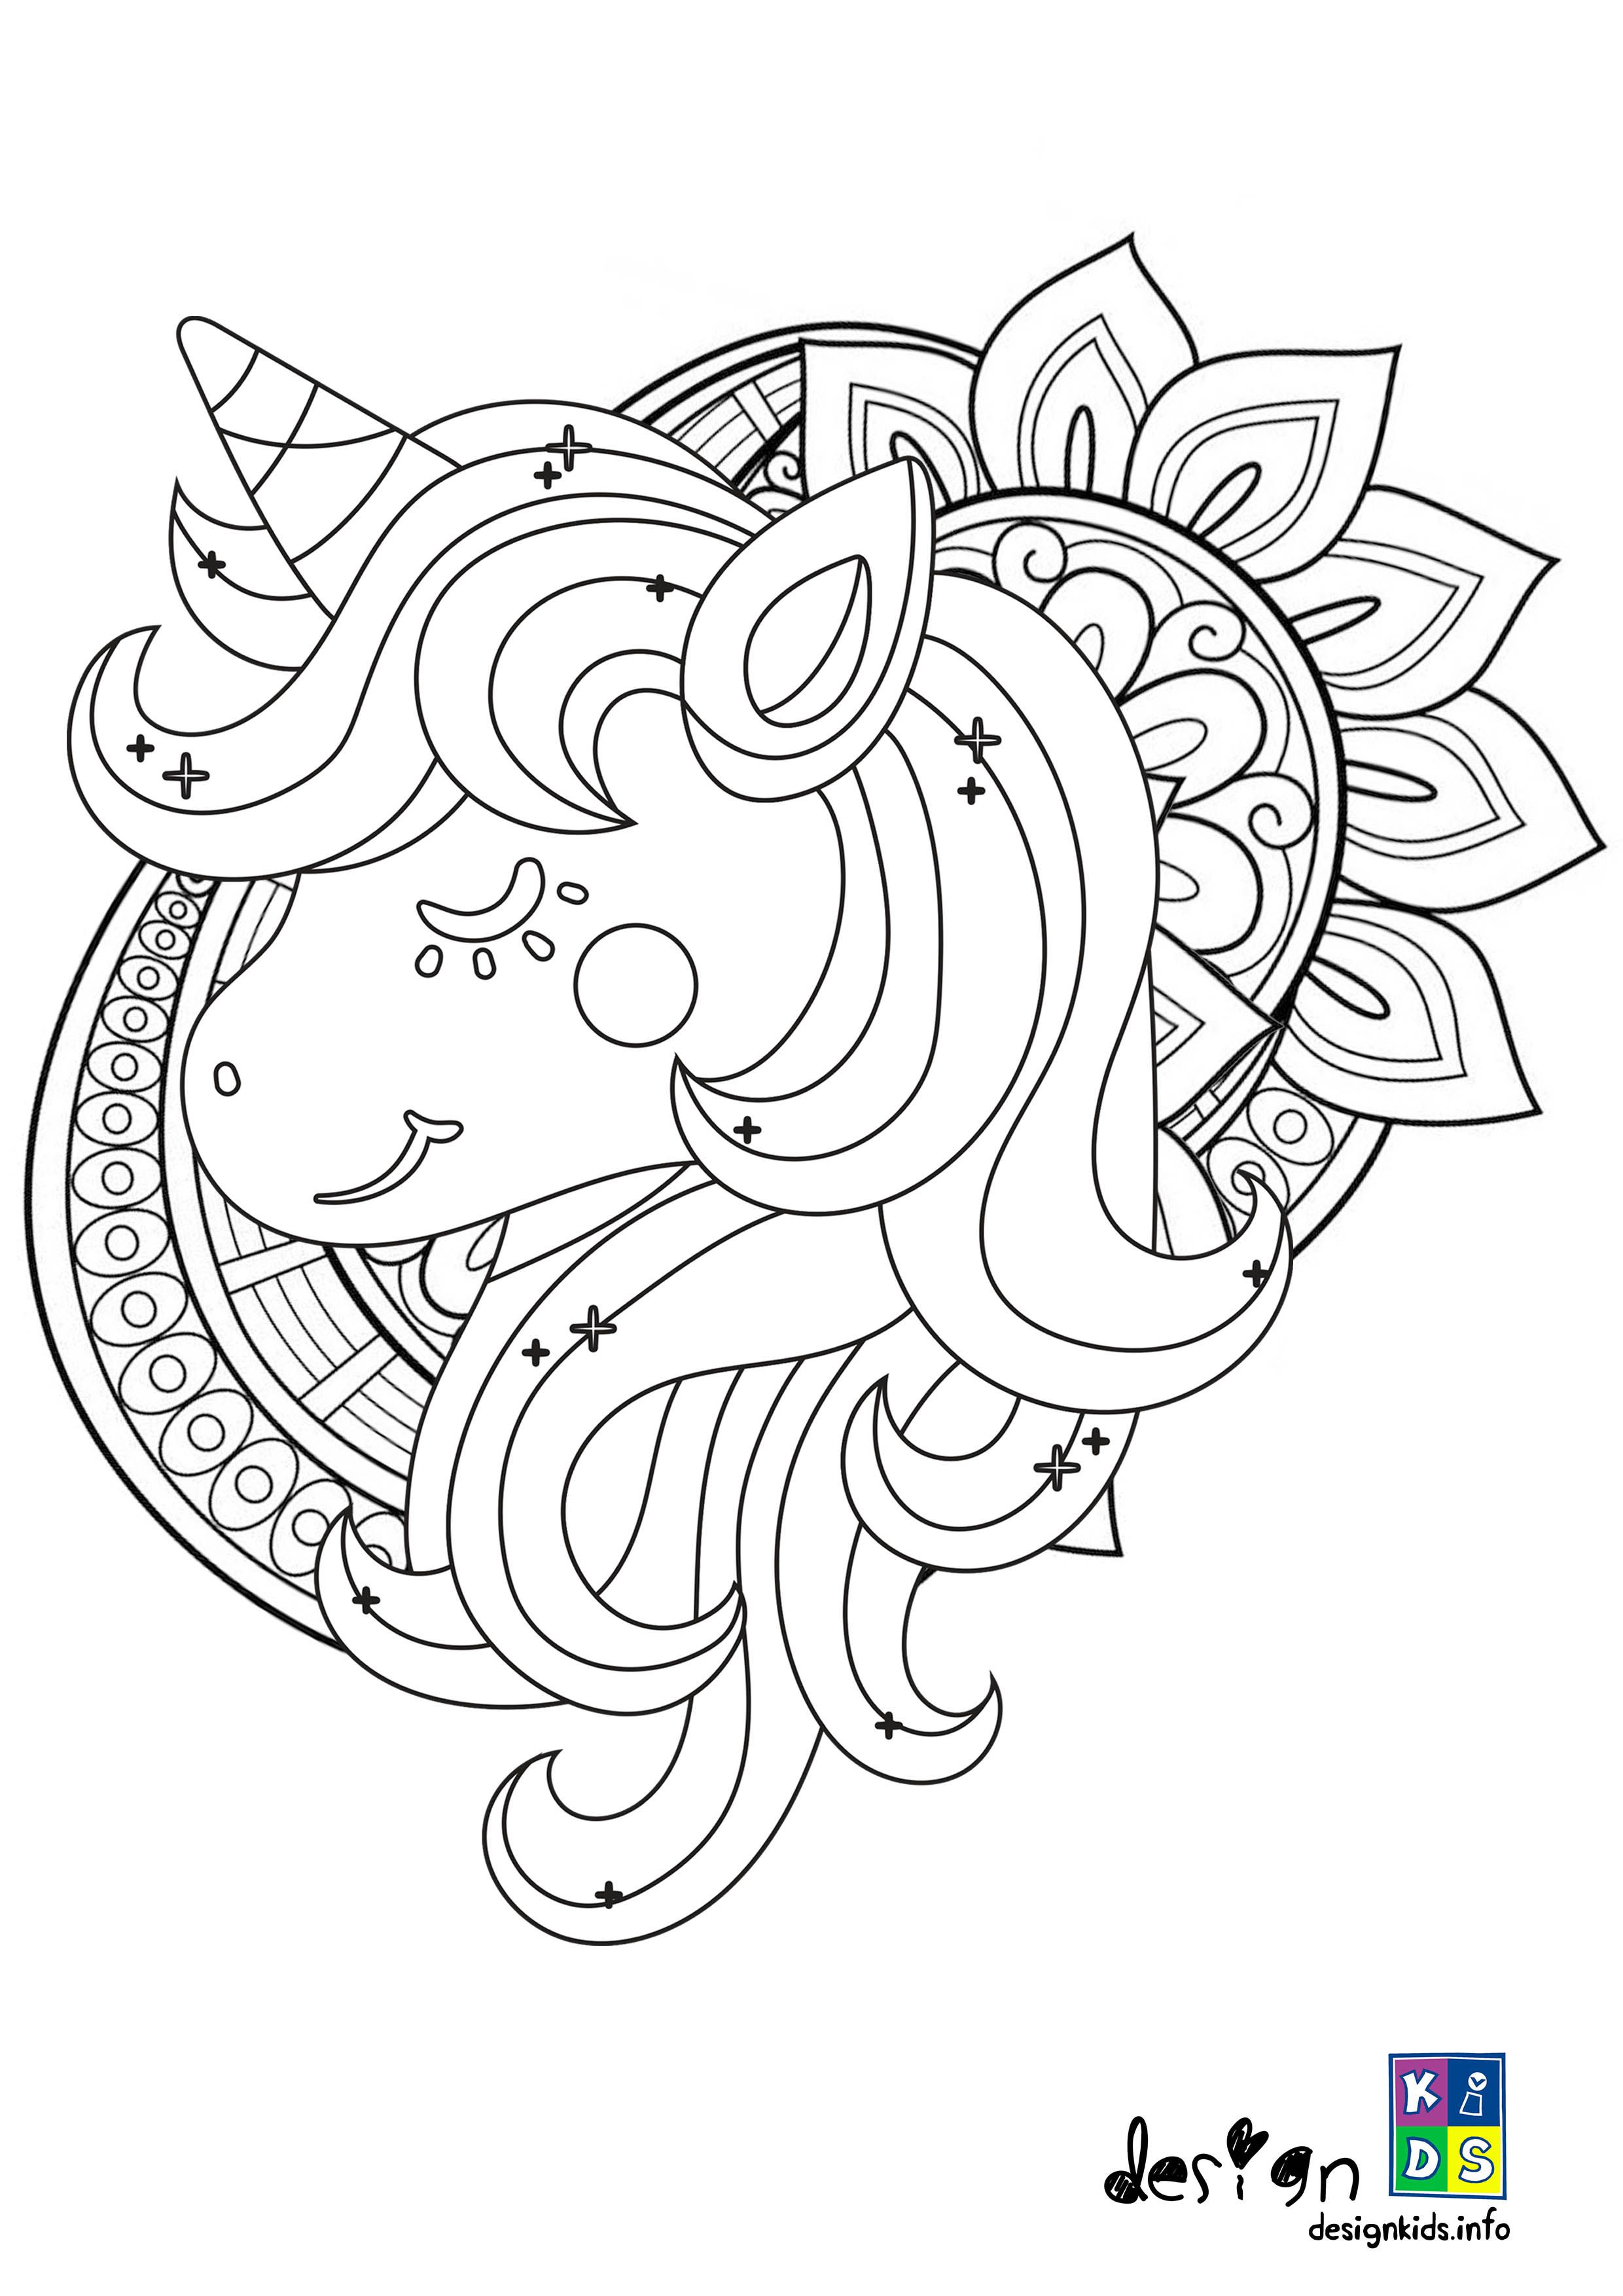 Cute Unicorn Mandala Coloring Page Designkids Make Your World More Colorful With Free Pr Mandala Coloring Pages Baseball Coloring Pages Unicorn Coloring Pages